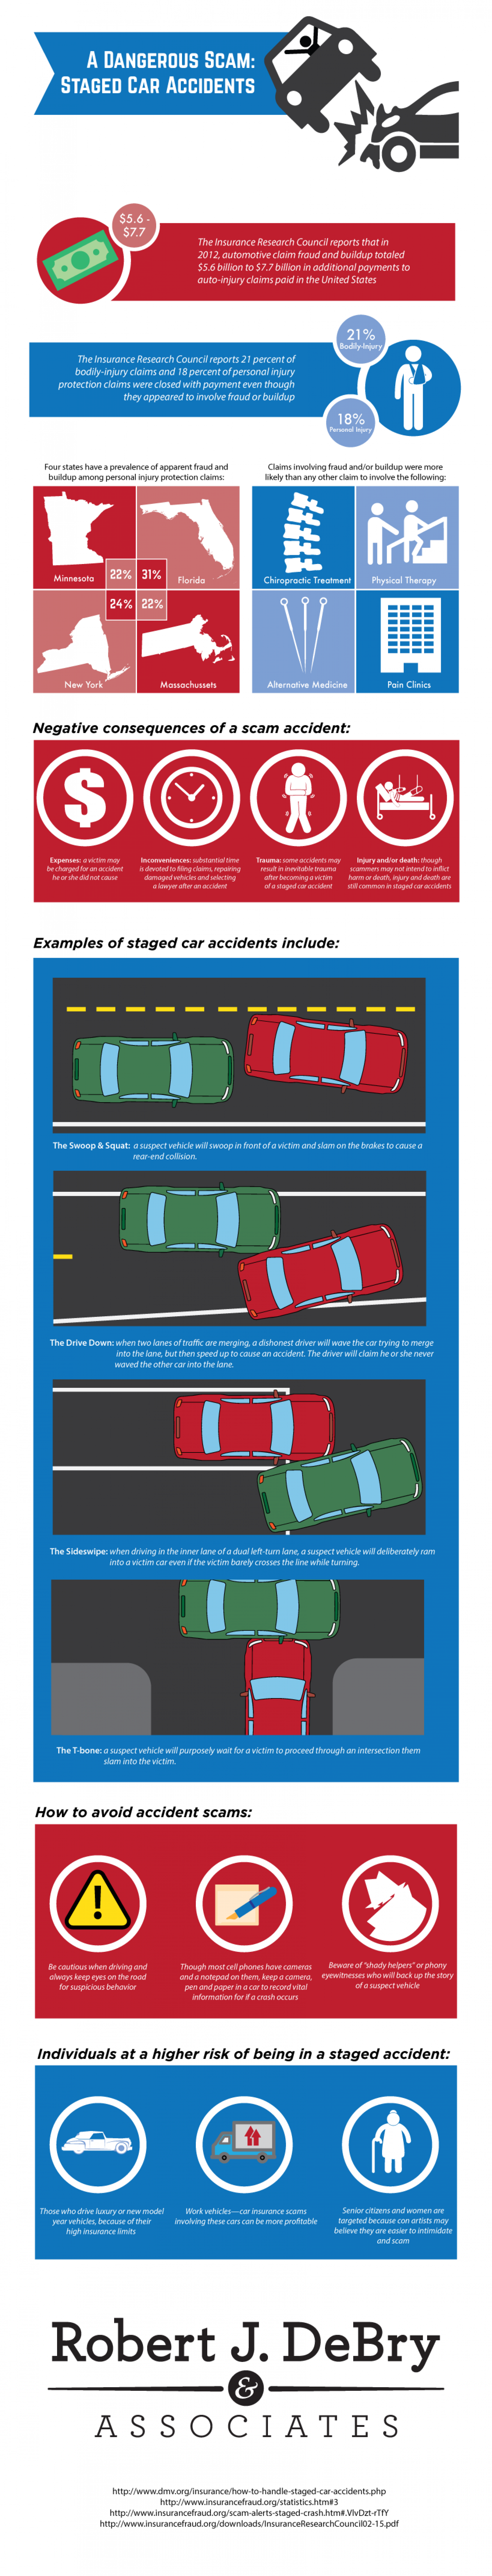 A Dangerous Scam: Staged Car Accidents Infographic